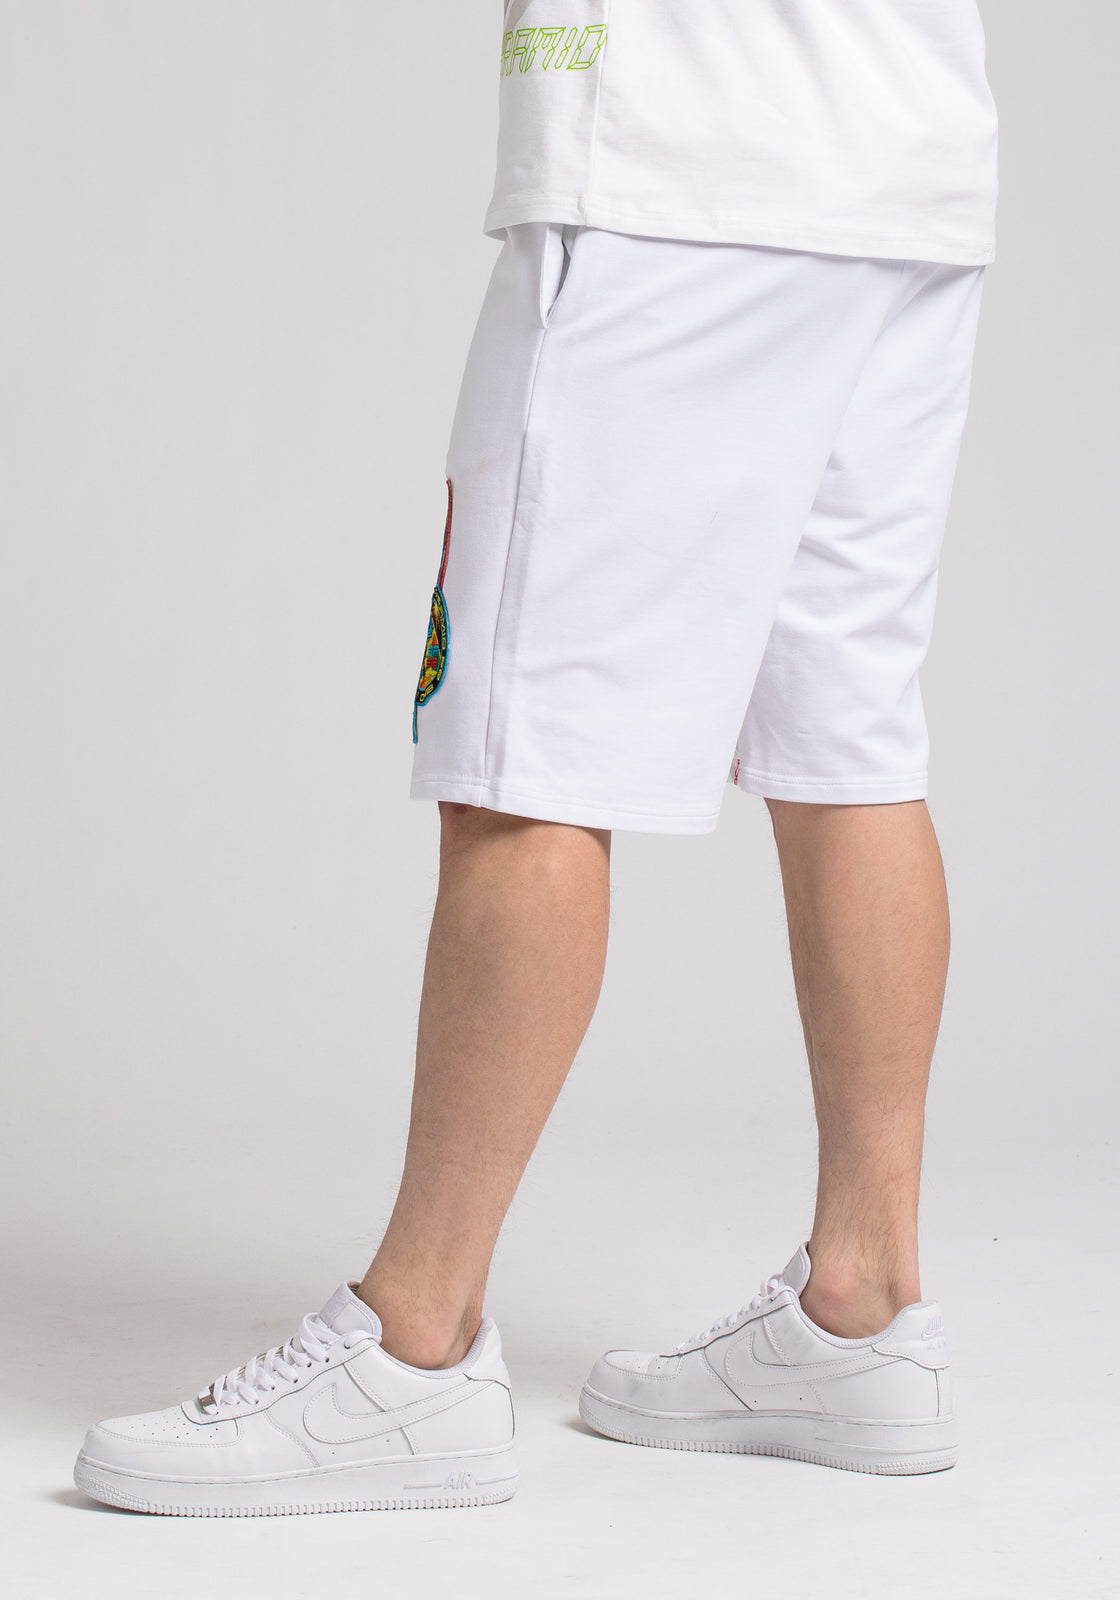 SPACE SHORTS - Color: White